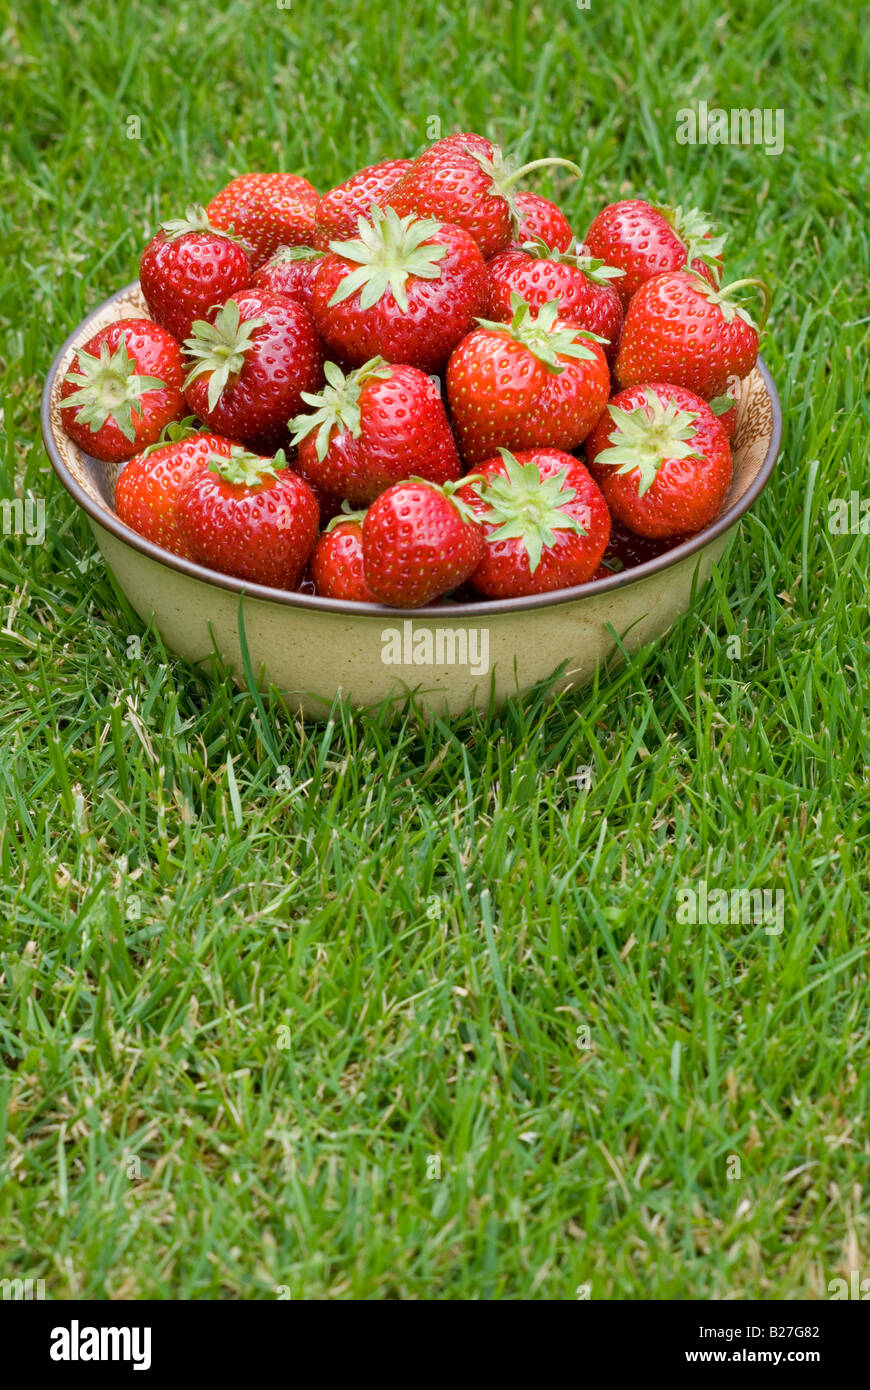 A bowl of freshly picked strawberries on green grass outside - Stock Image